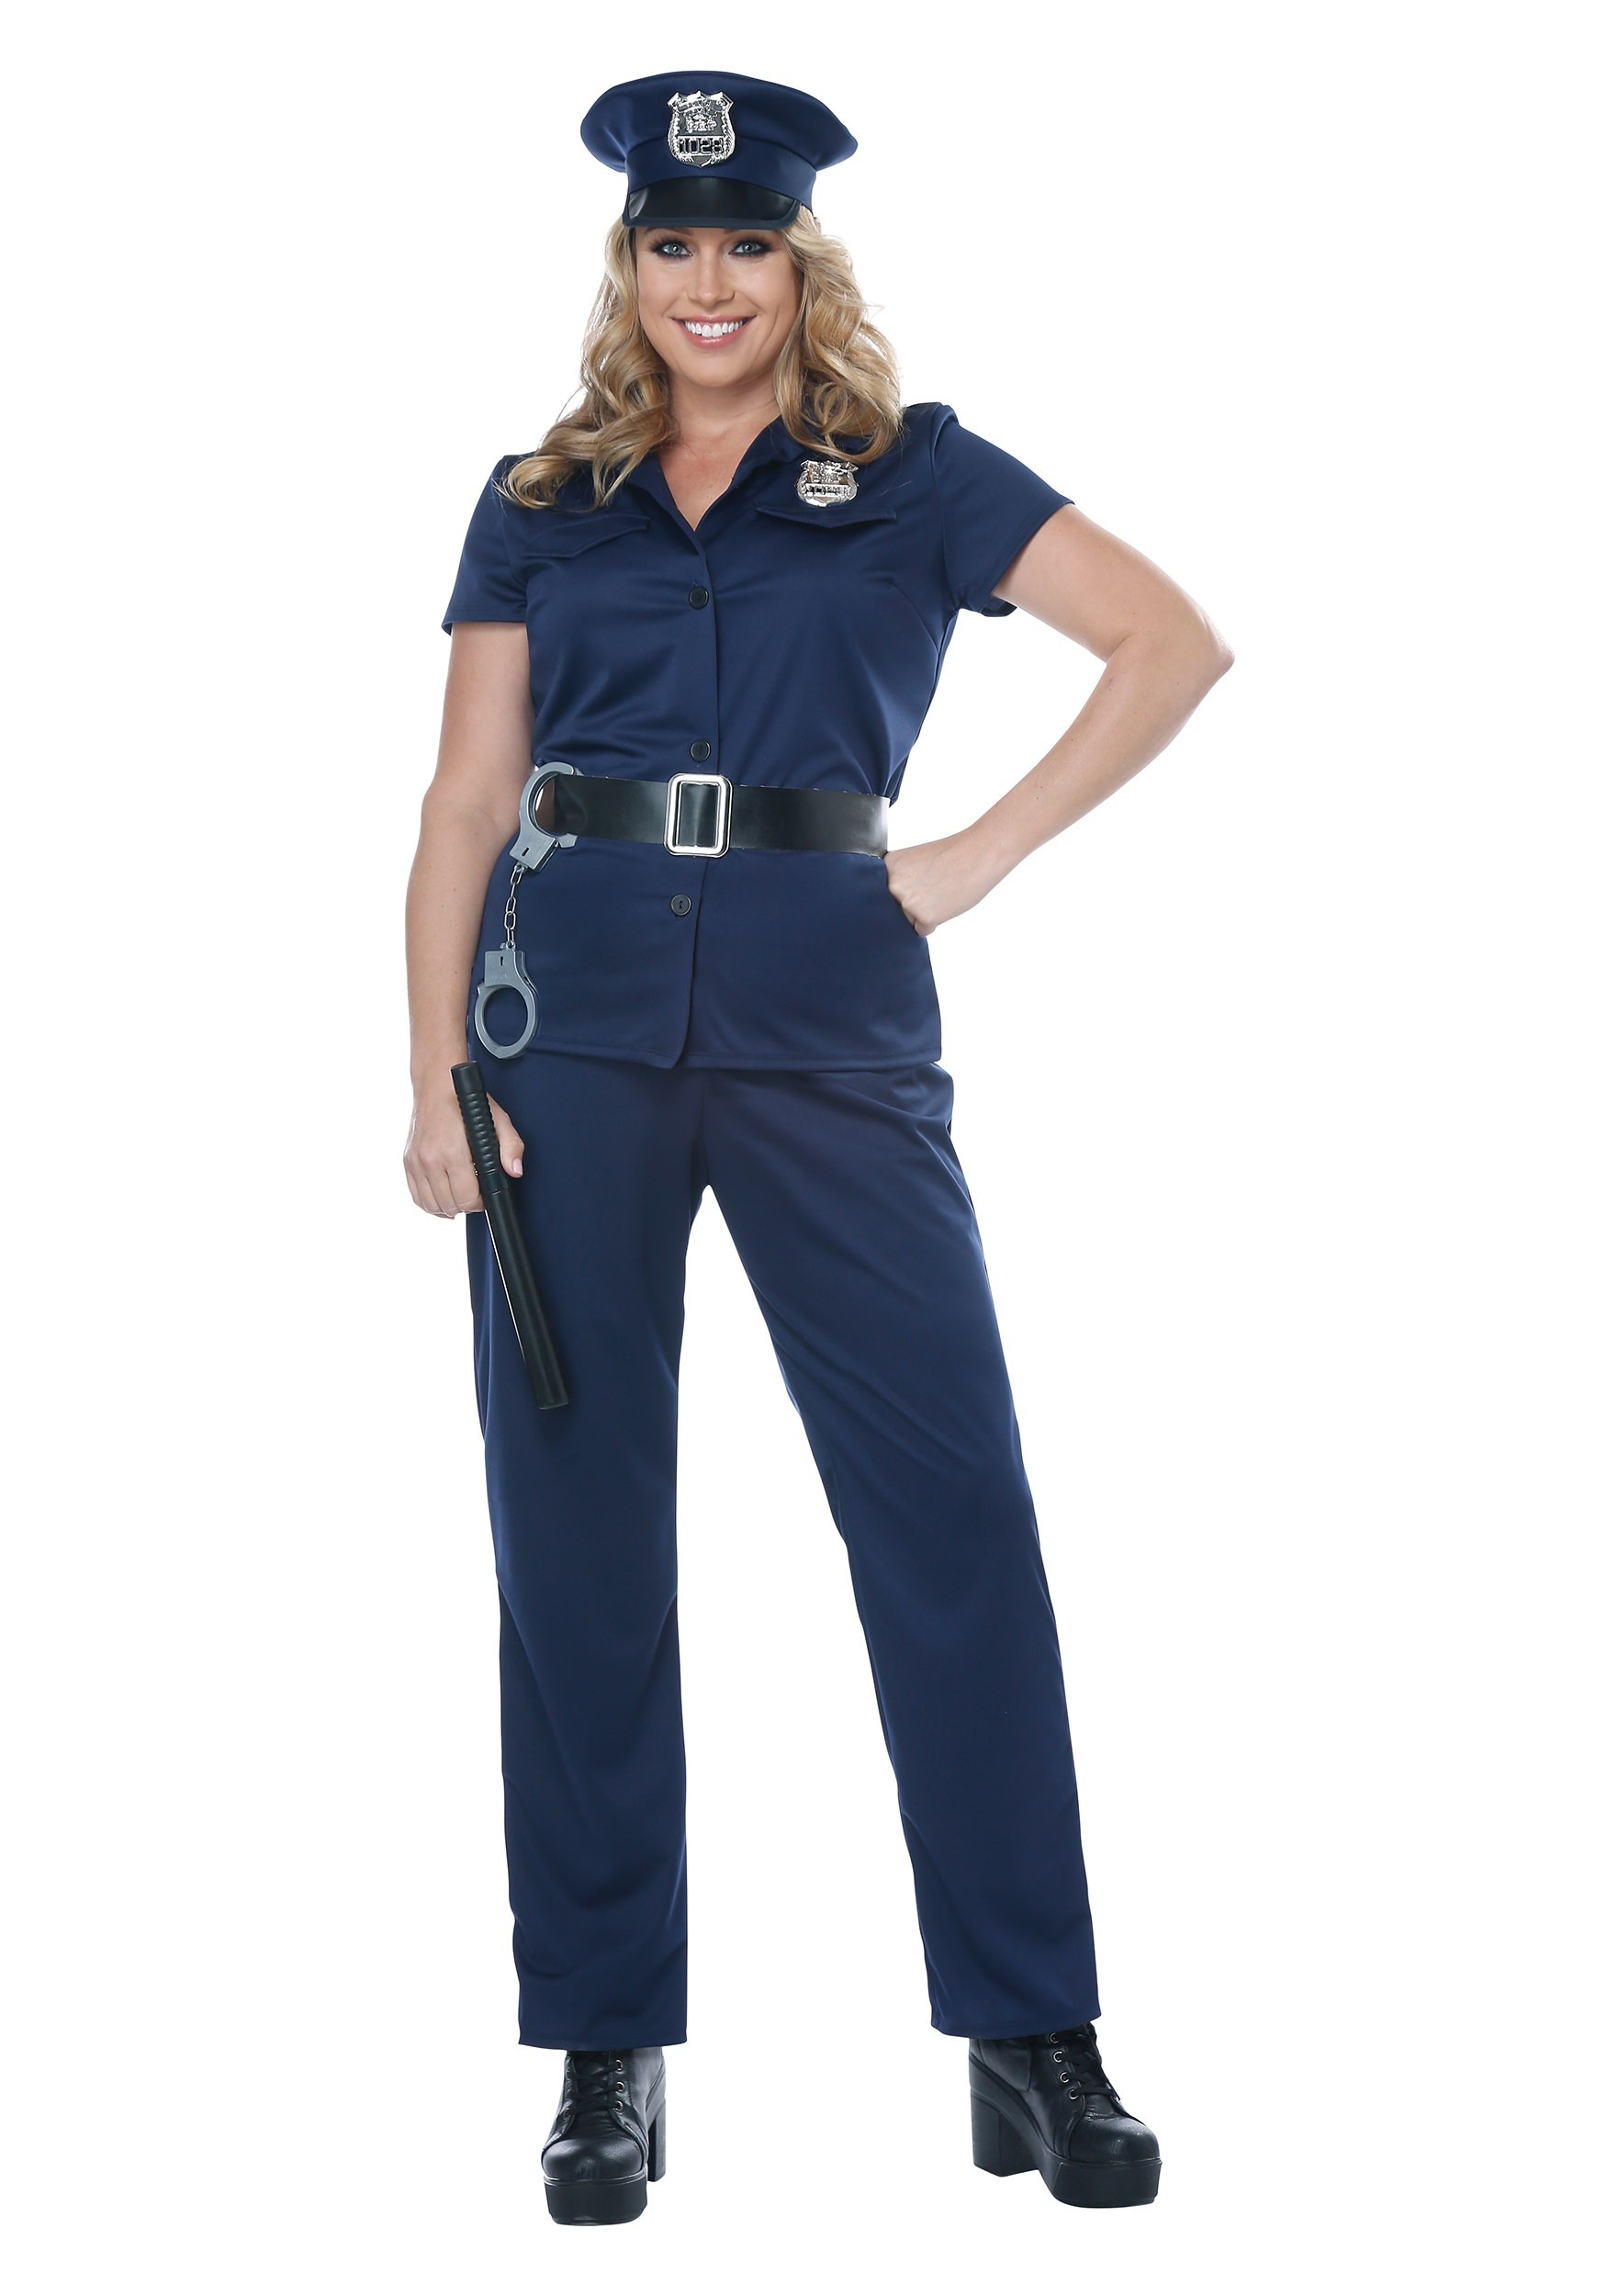 plus size police woman costume